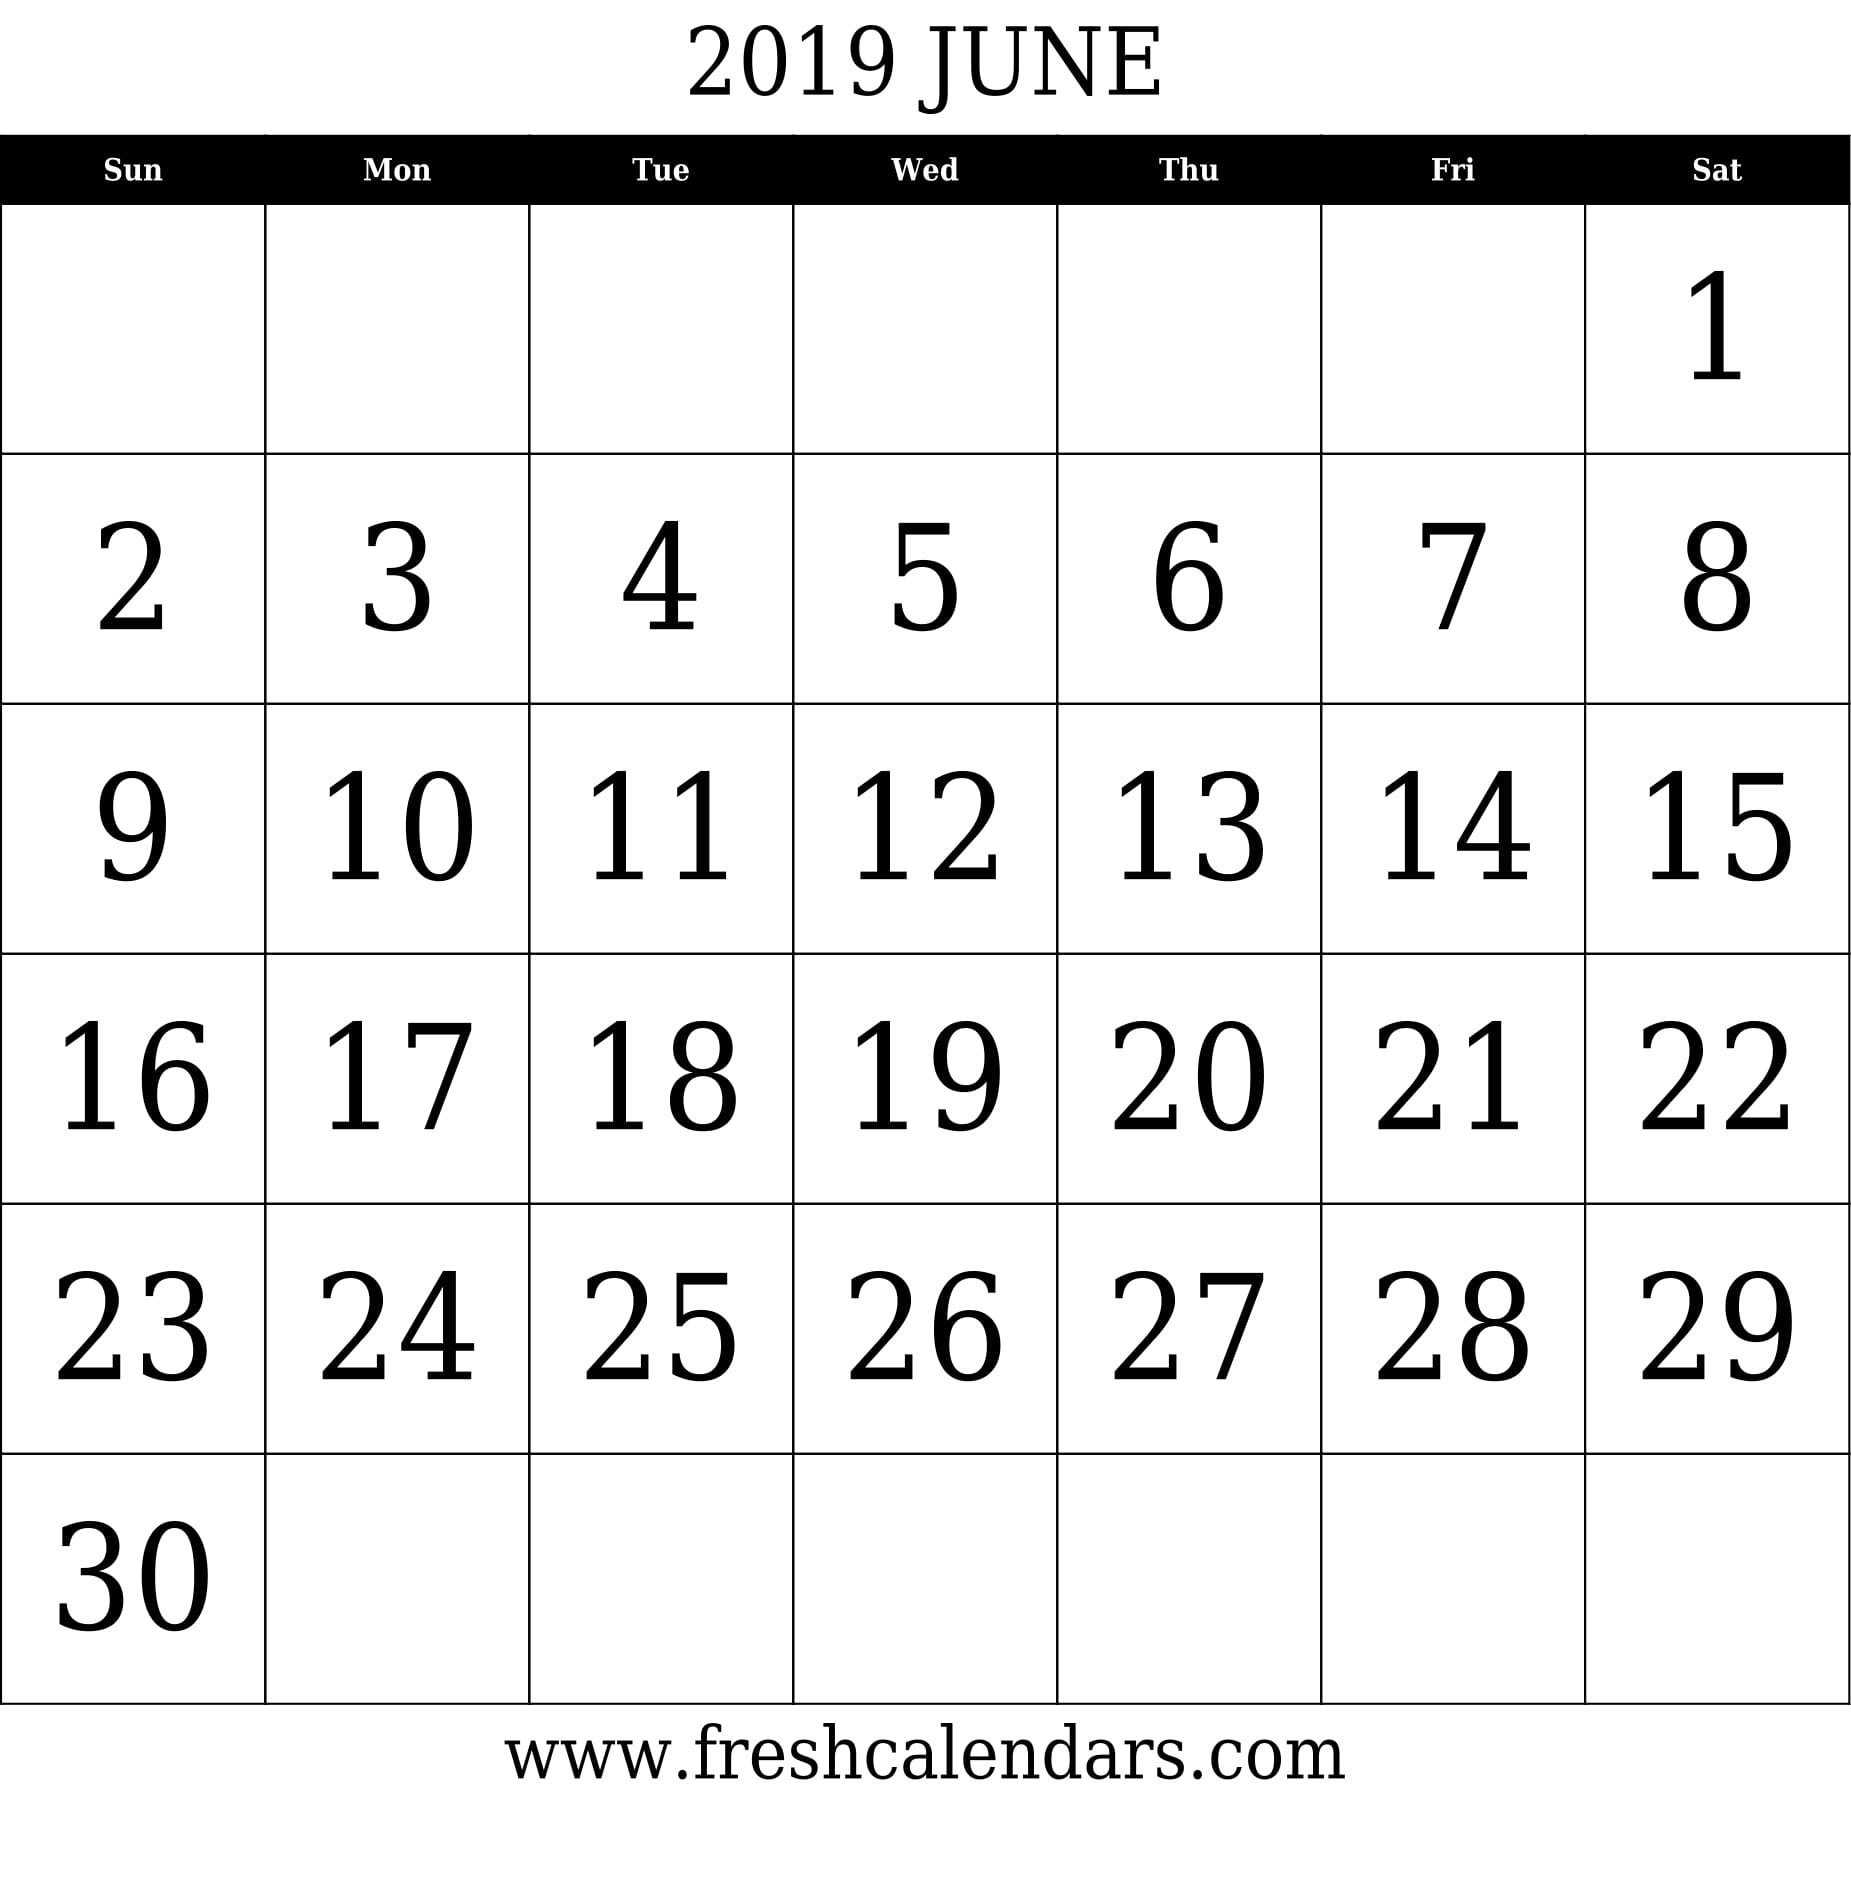 June 2019 Calendar Printable - Fresh Calendars June 2 2019 Calendar